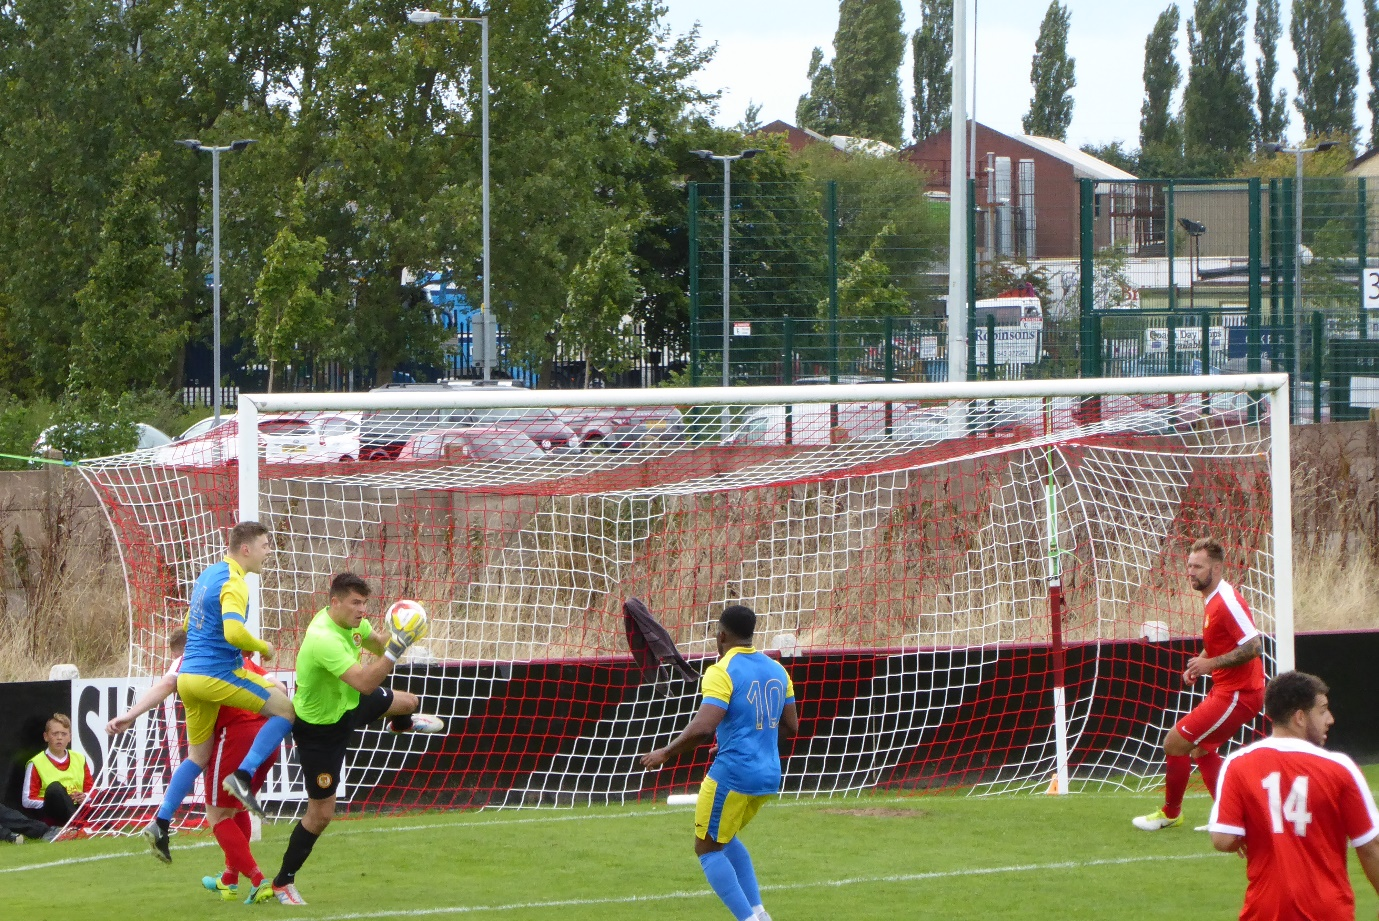 The Wood's goalkeeper makes a super save, leaving a Tividale player clattering in to another player, but they pose a increasing threat as the second half evolves